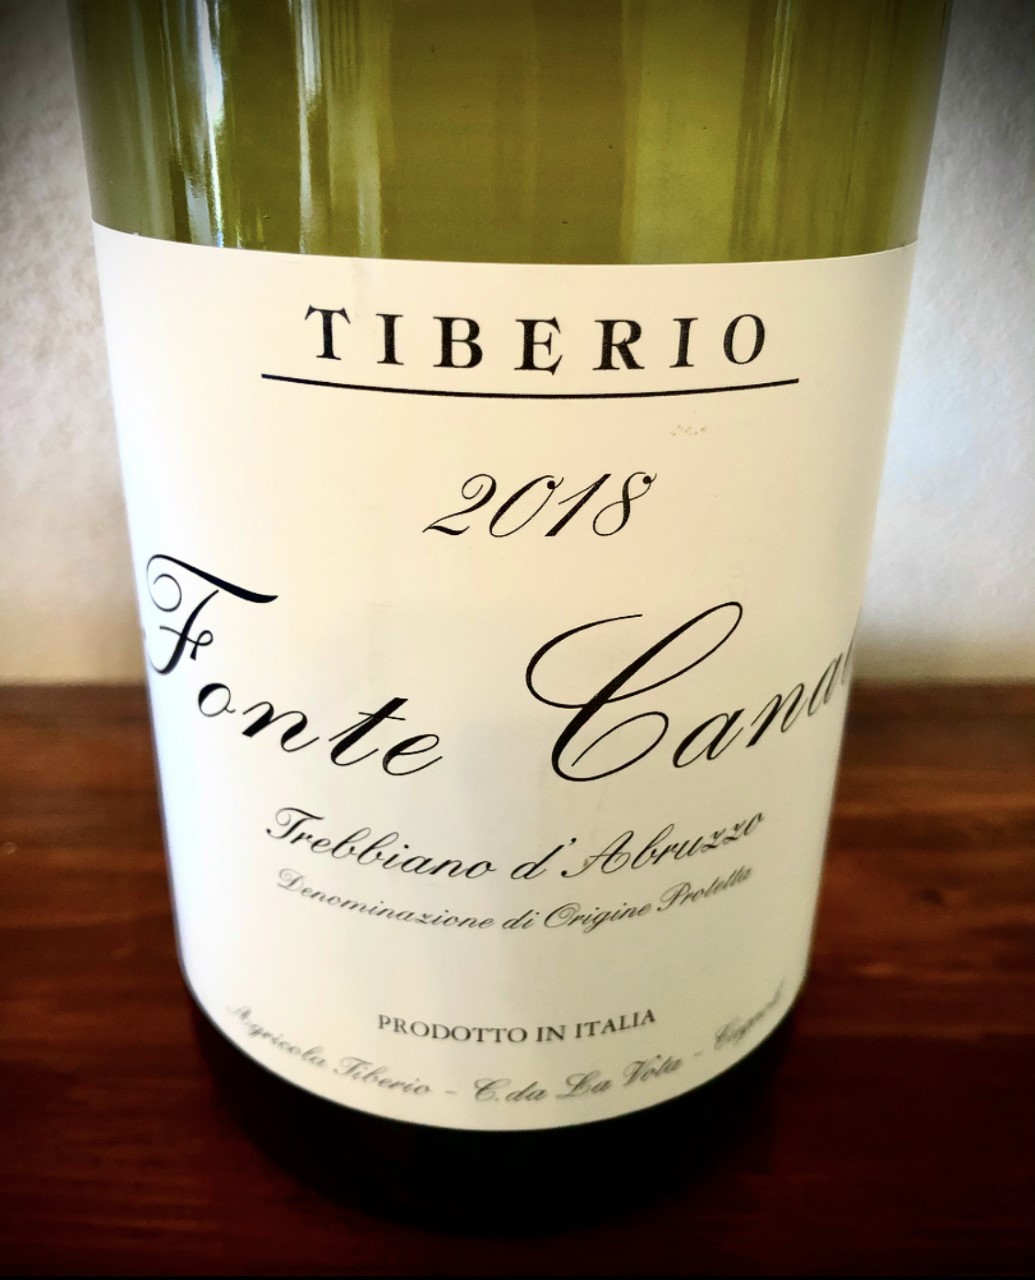 Tiberios-Trebbiano-dAbruzzo-Fonte-Canale-was-one-of-the-four-topscoring-wines-of-the-year-1-2-1-1-1-1-1